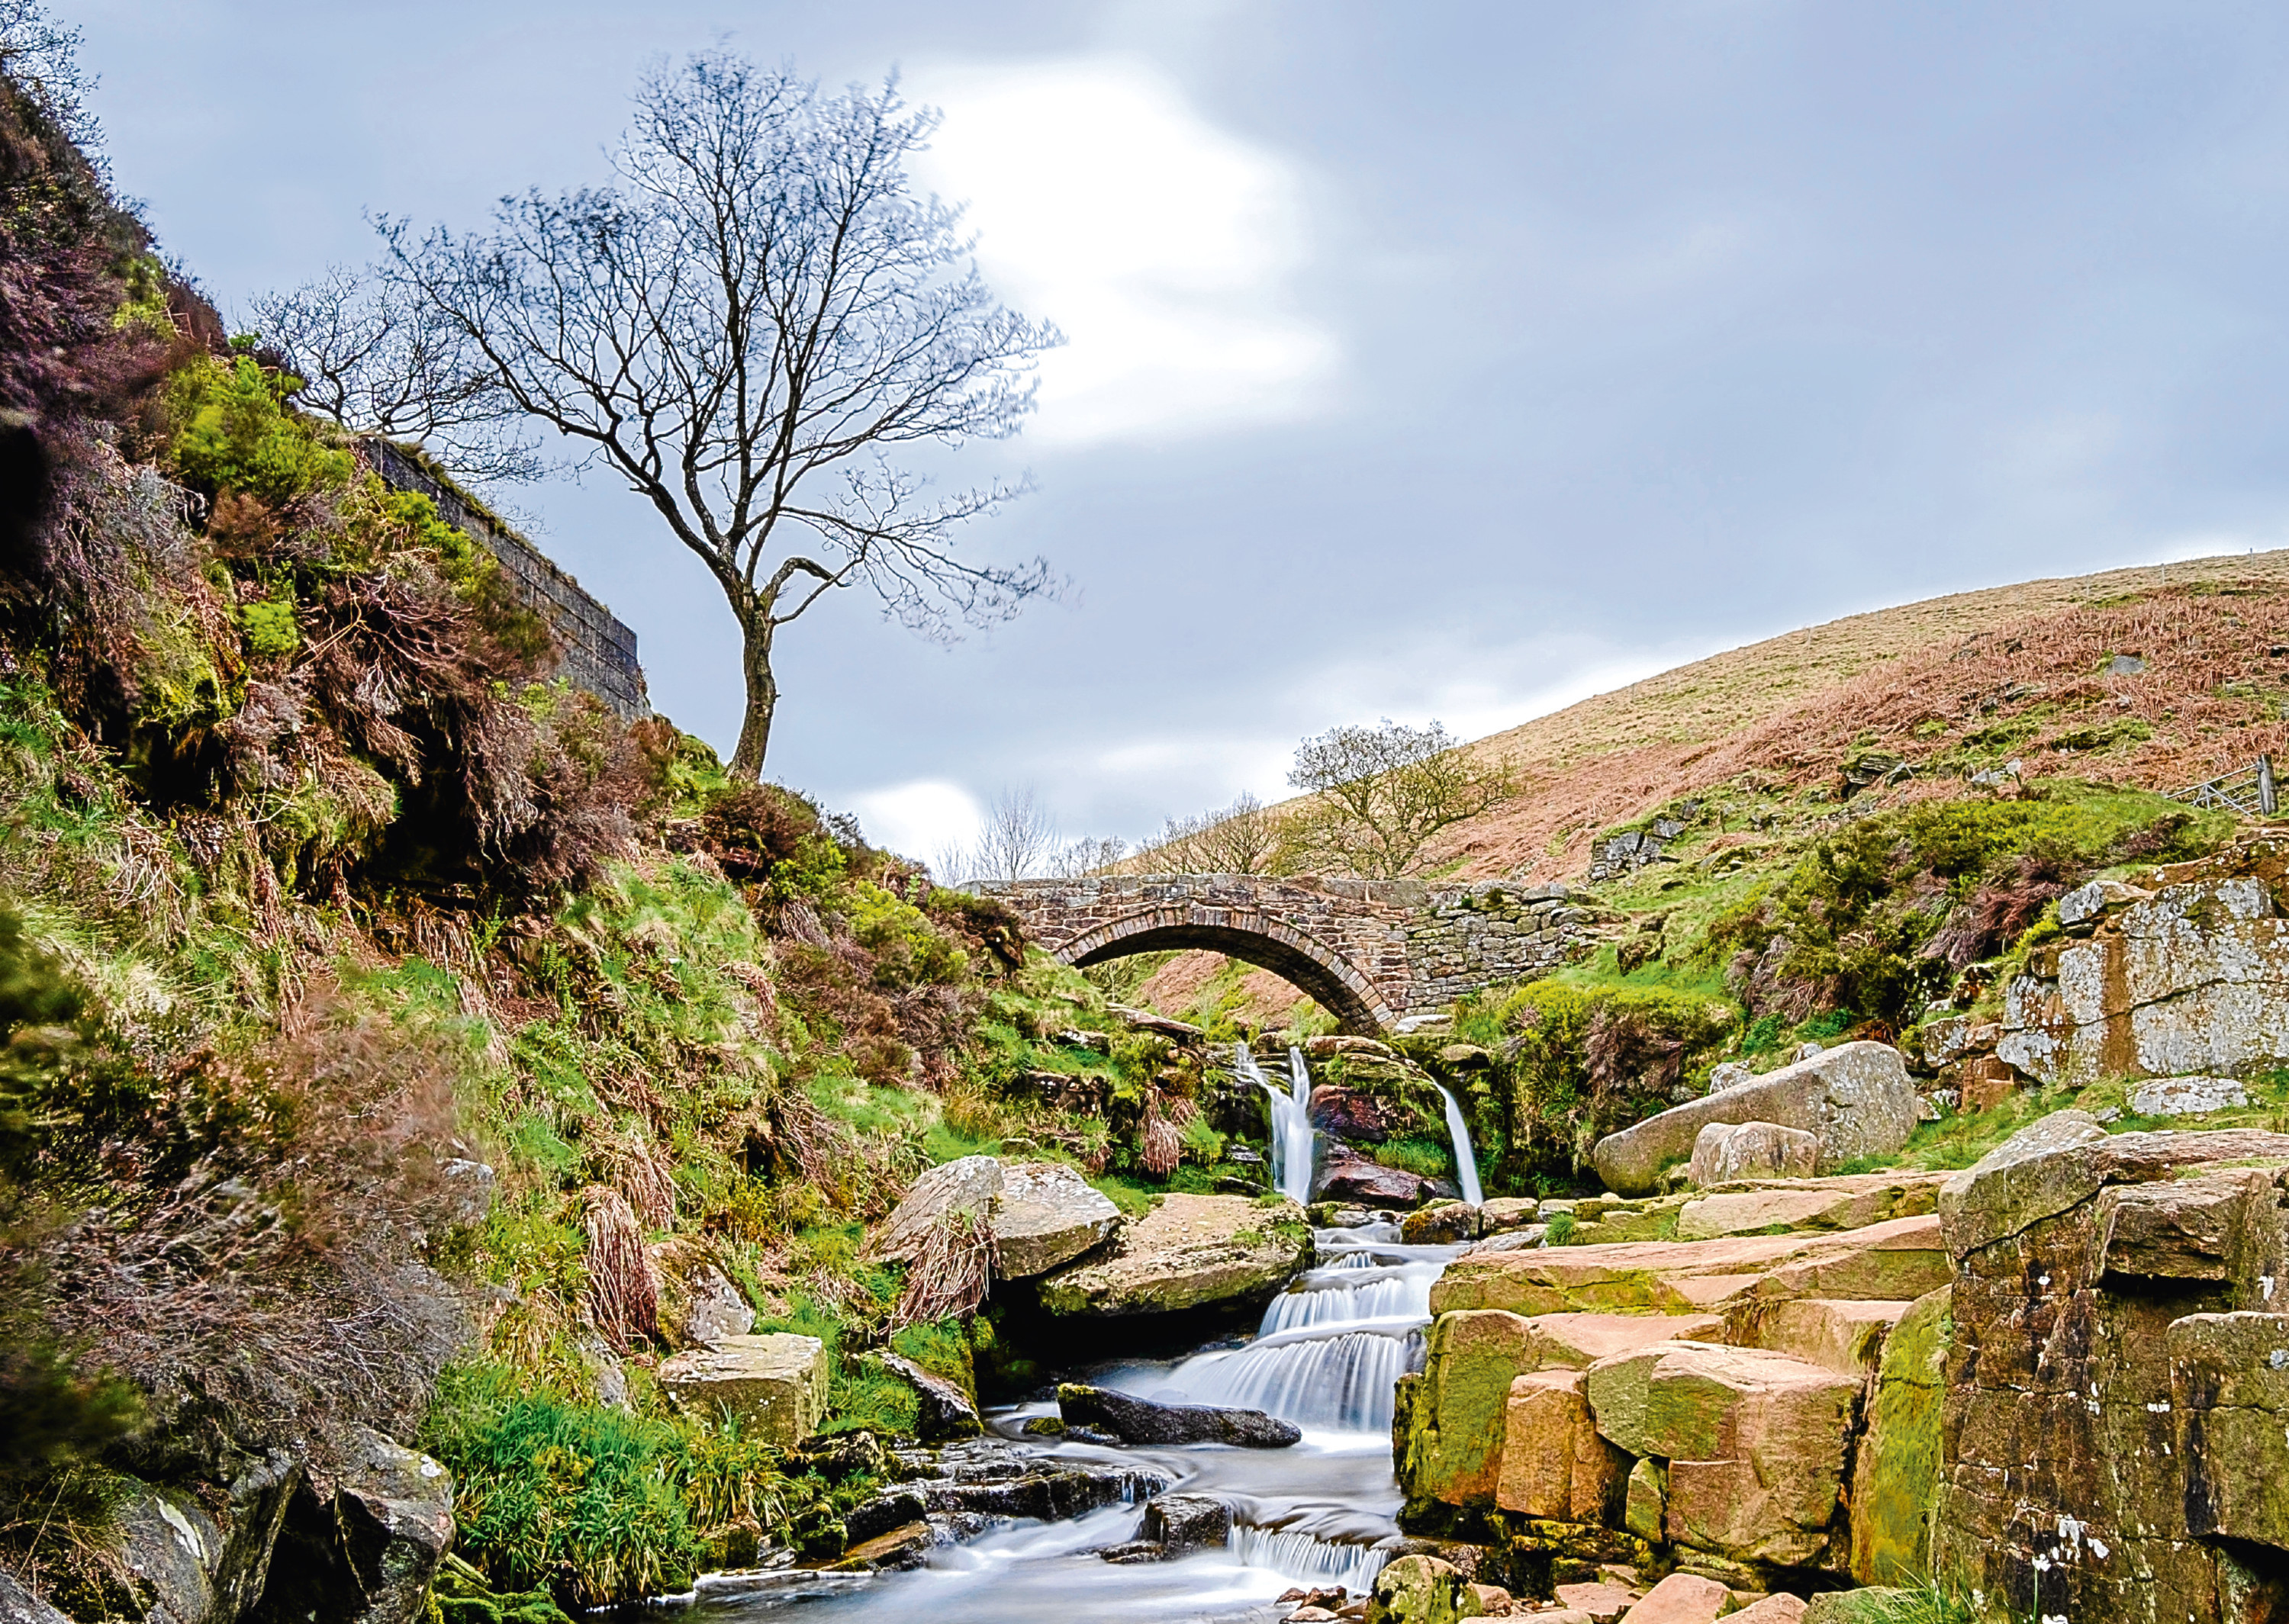 Tolkien - The Three Shires Head water fall at the meeting point of Derbyshire, Staffordshire and Cheshire